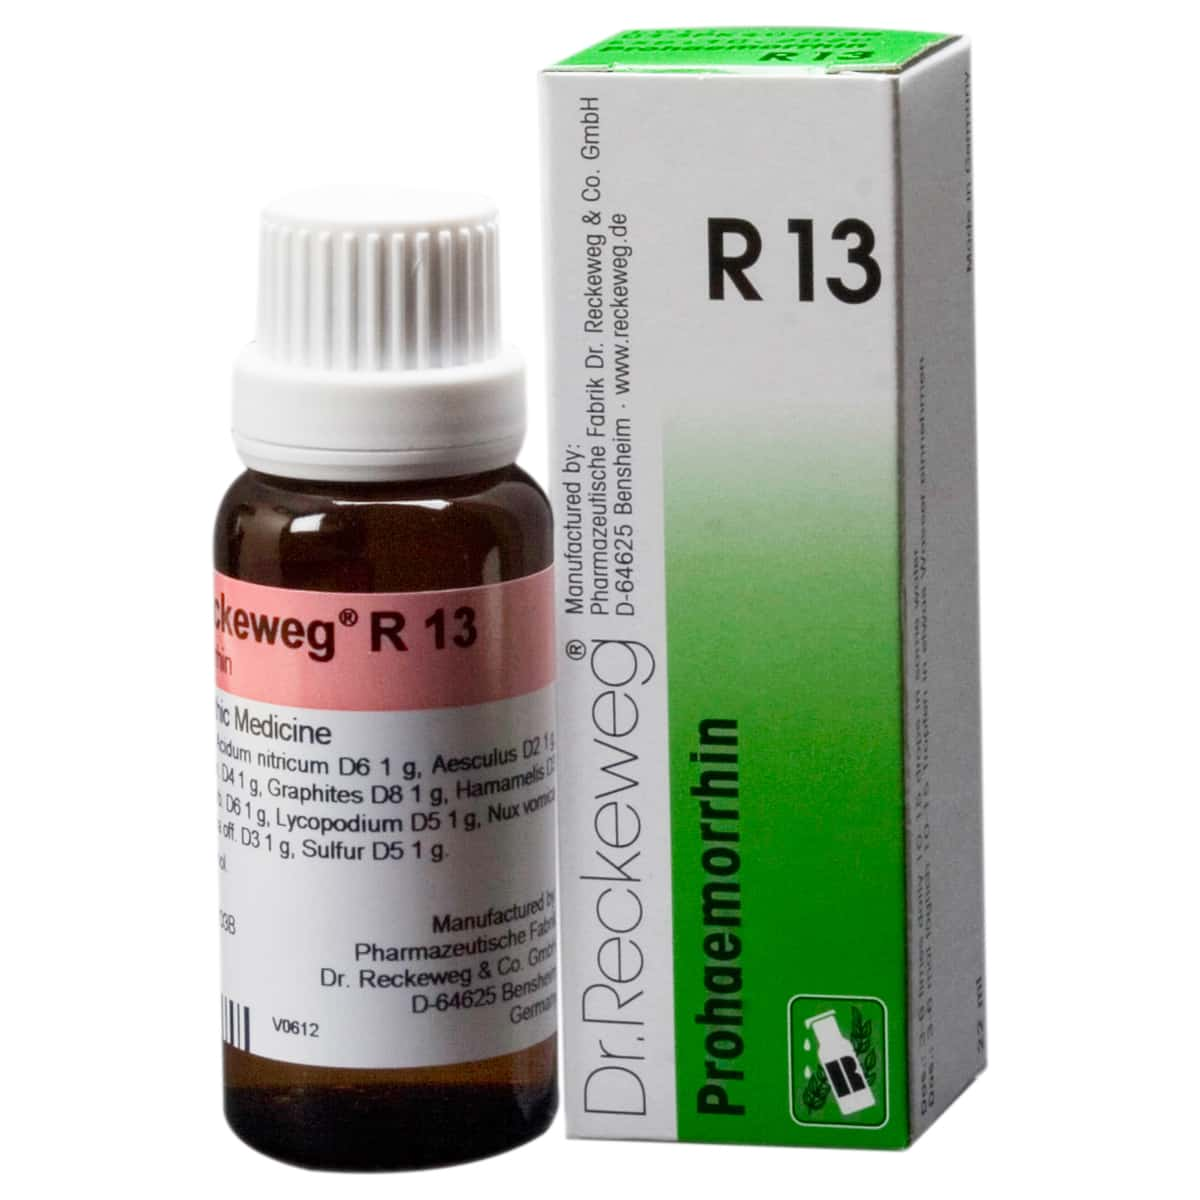 R13- Homeopathicology.com